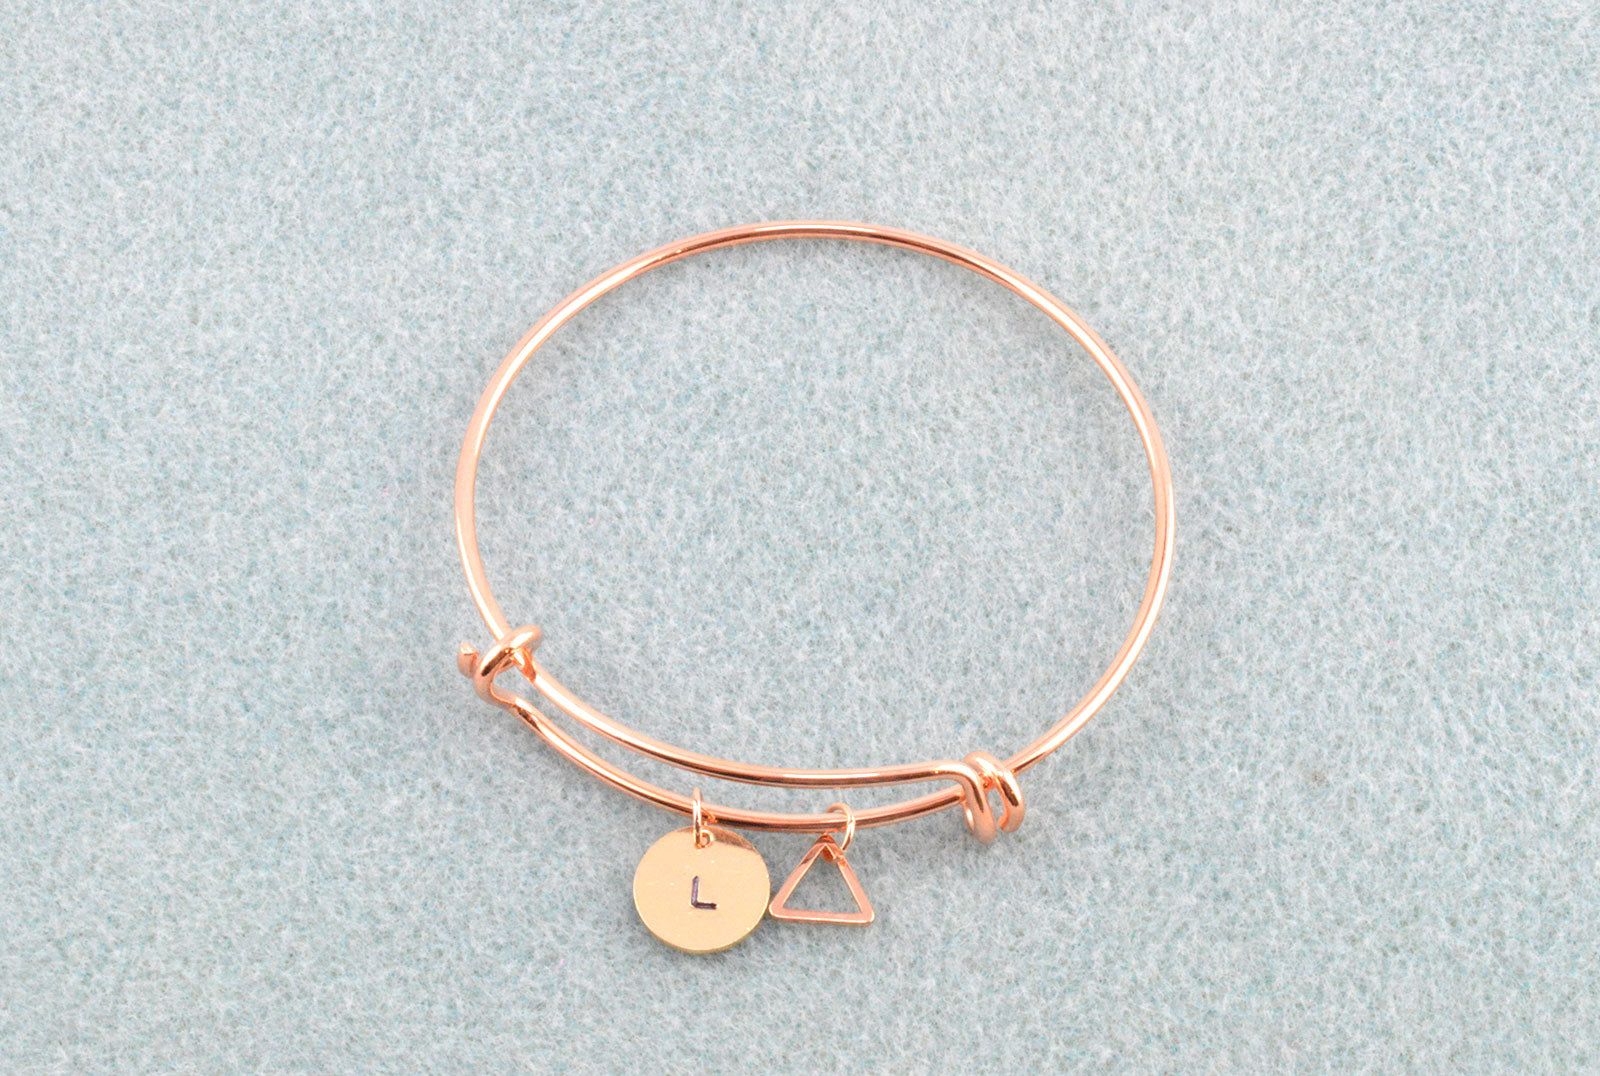 plated stainless bangles bangle dp amazon rose steel jewelry diy com beads fit keys gold bracelet starter charm three